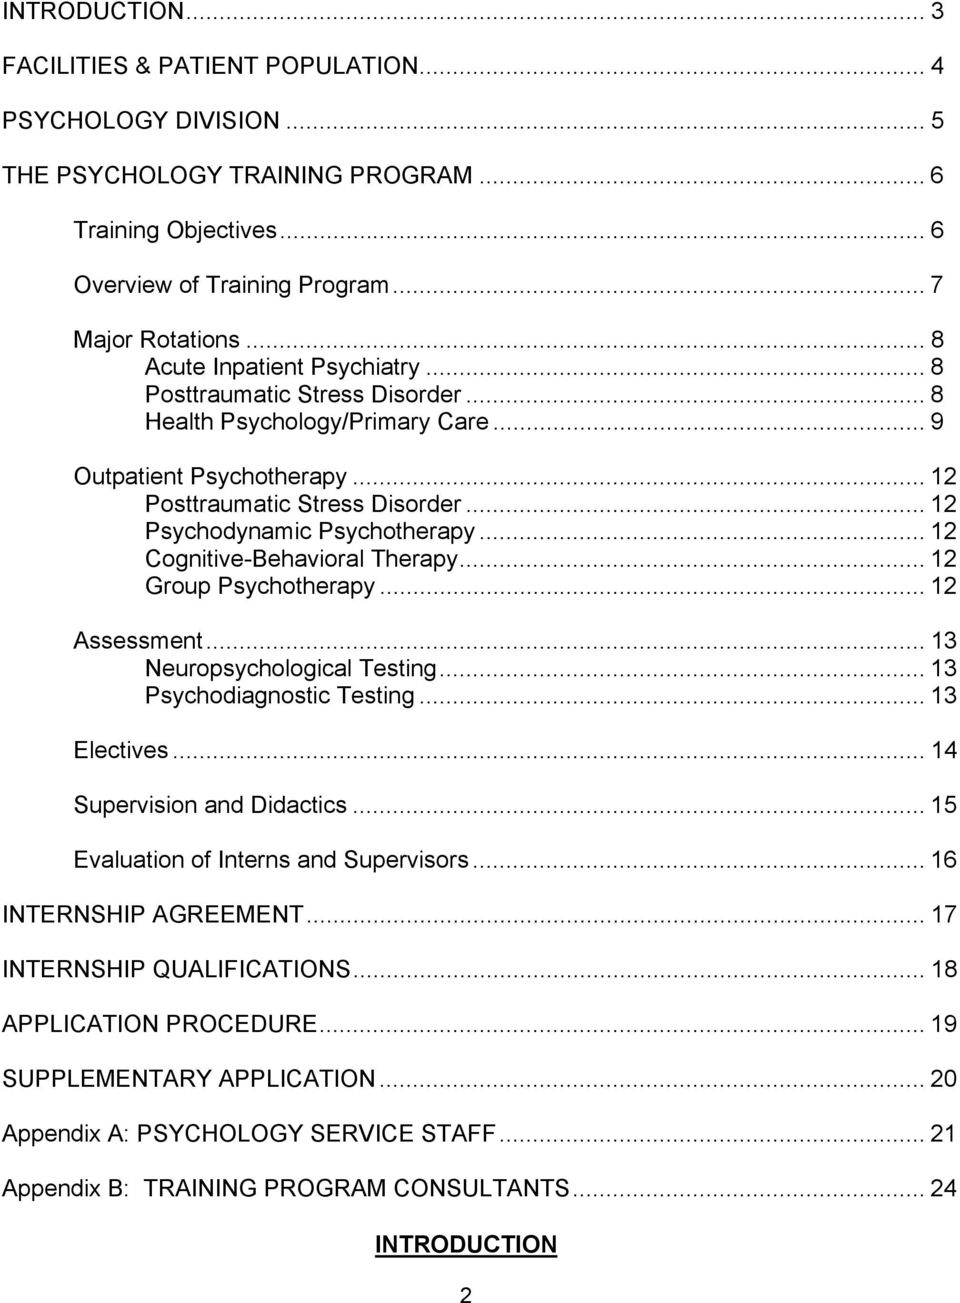 .. 12 Psychodynamic Psychotherapy... 12 Cognitive-Behavioral Therapy... 12 Group Psychotherapy... 12 Assessment... 13 Neuropsychological Testing... 13 Psychodiagnostic Testing... 13 Electives.